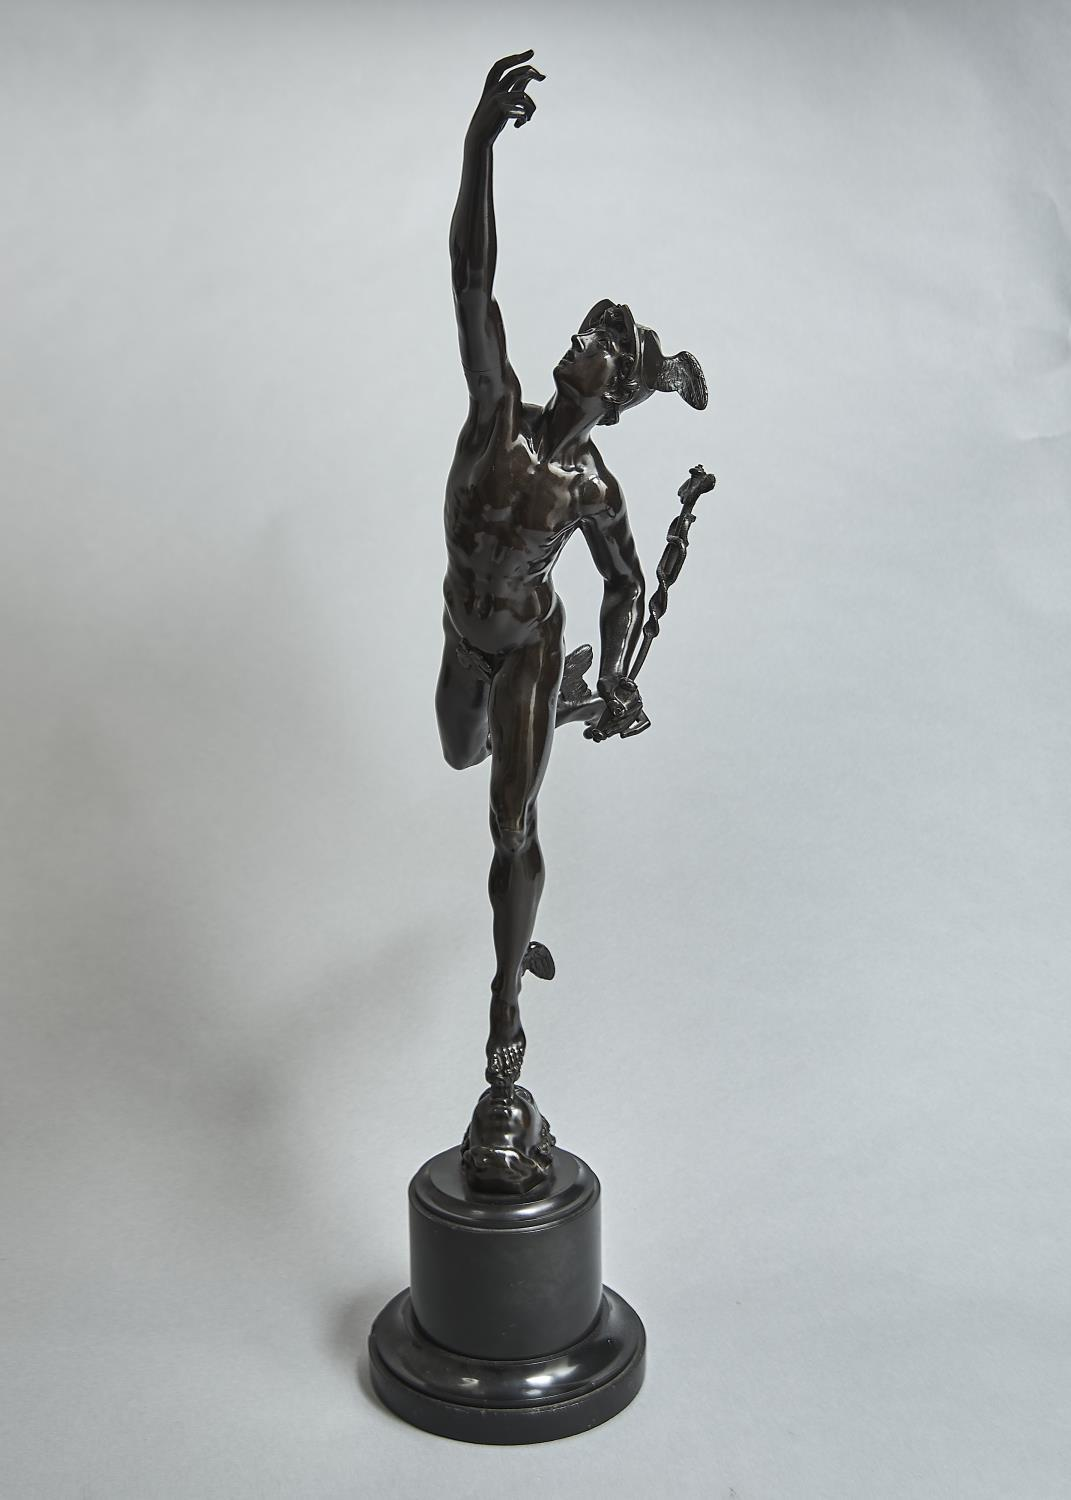 A FRENCH BRONZE STATUETTE OF MERCURY AFTER GIAMBOLOGNA, LATE 19TH C, ON NERO BELGICA MARBLE SOCLE,